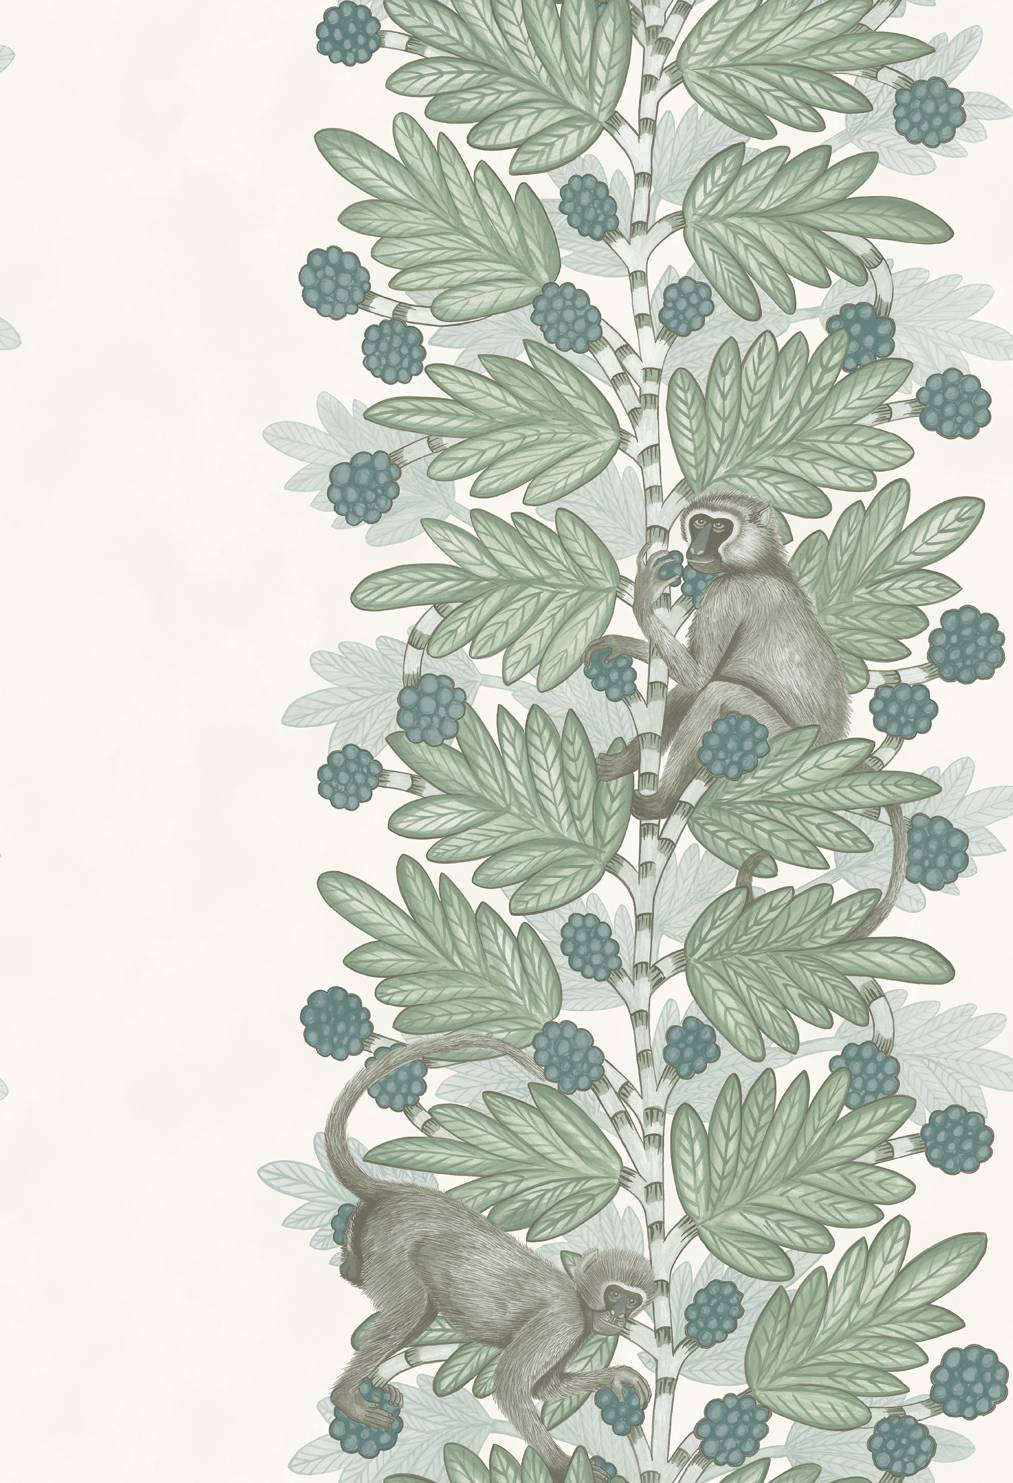 109-11052 Acacia- The Ardmore Collection- Cole & Son - 72dpi - RGB